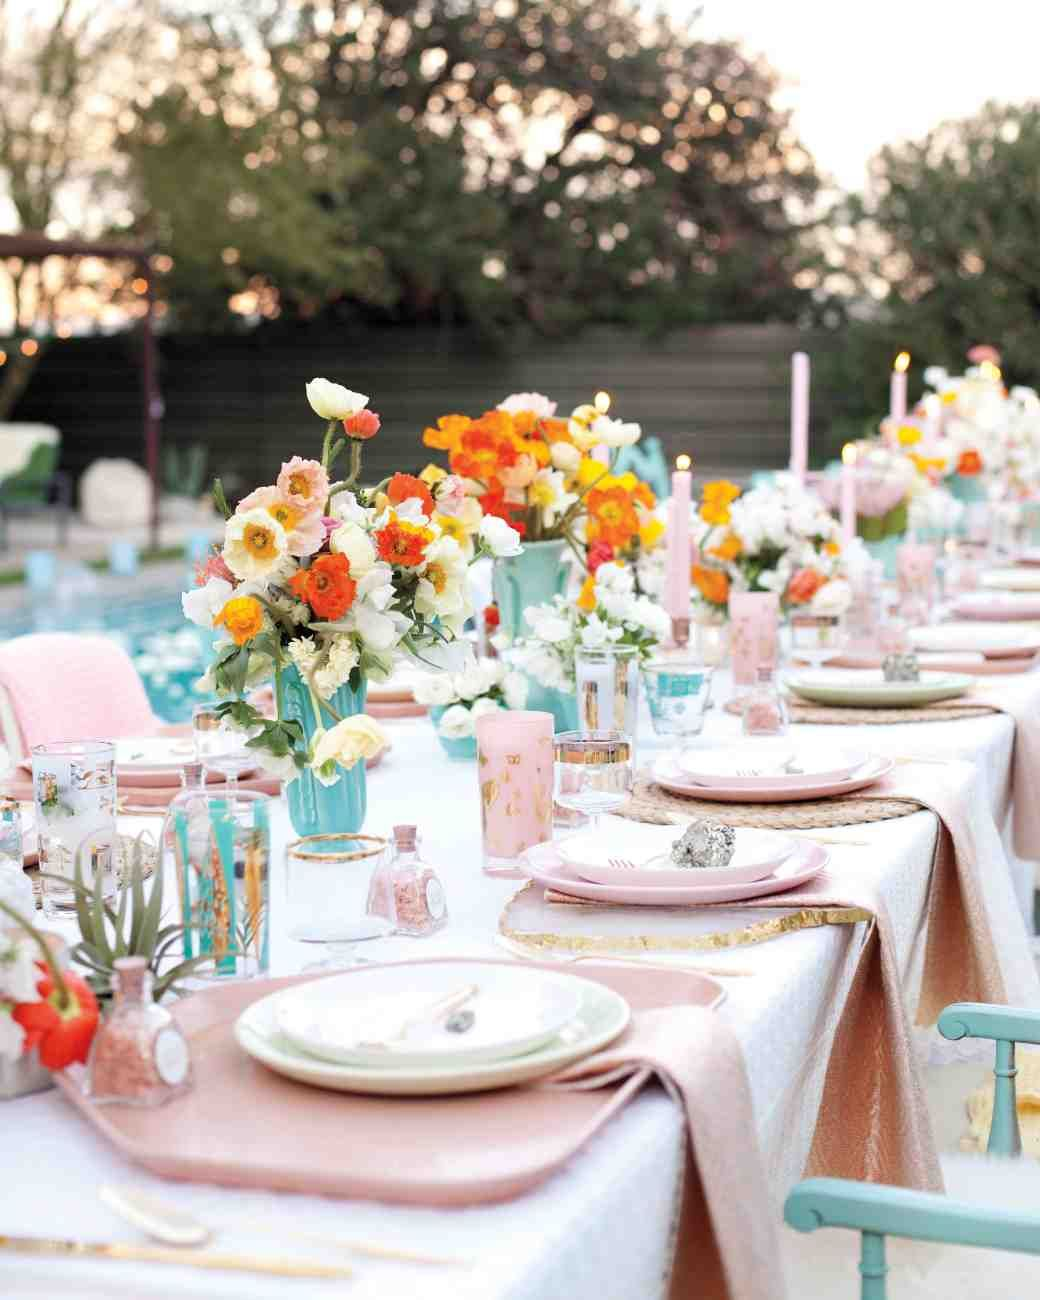 Unique Garden Wedding Ideas: 43 Dreamy Watercolor-Inspired Wedding Ideas